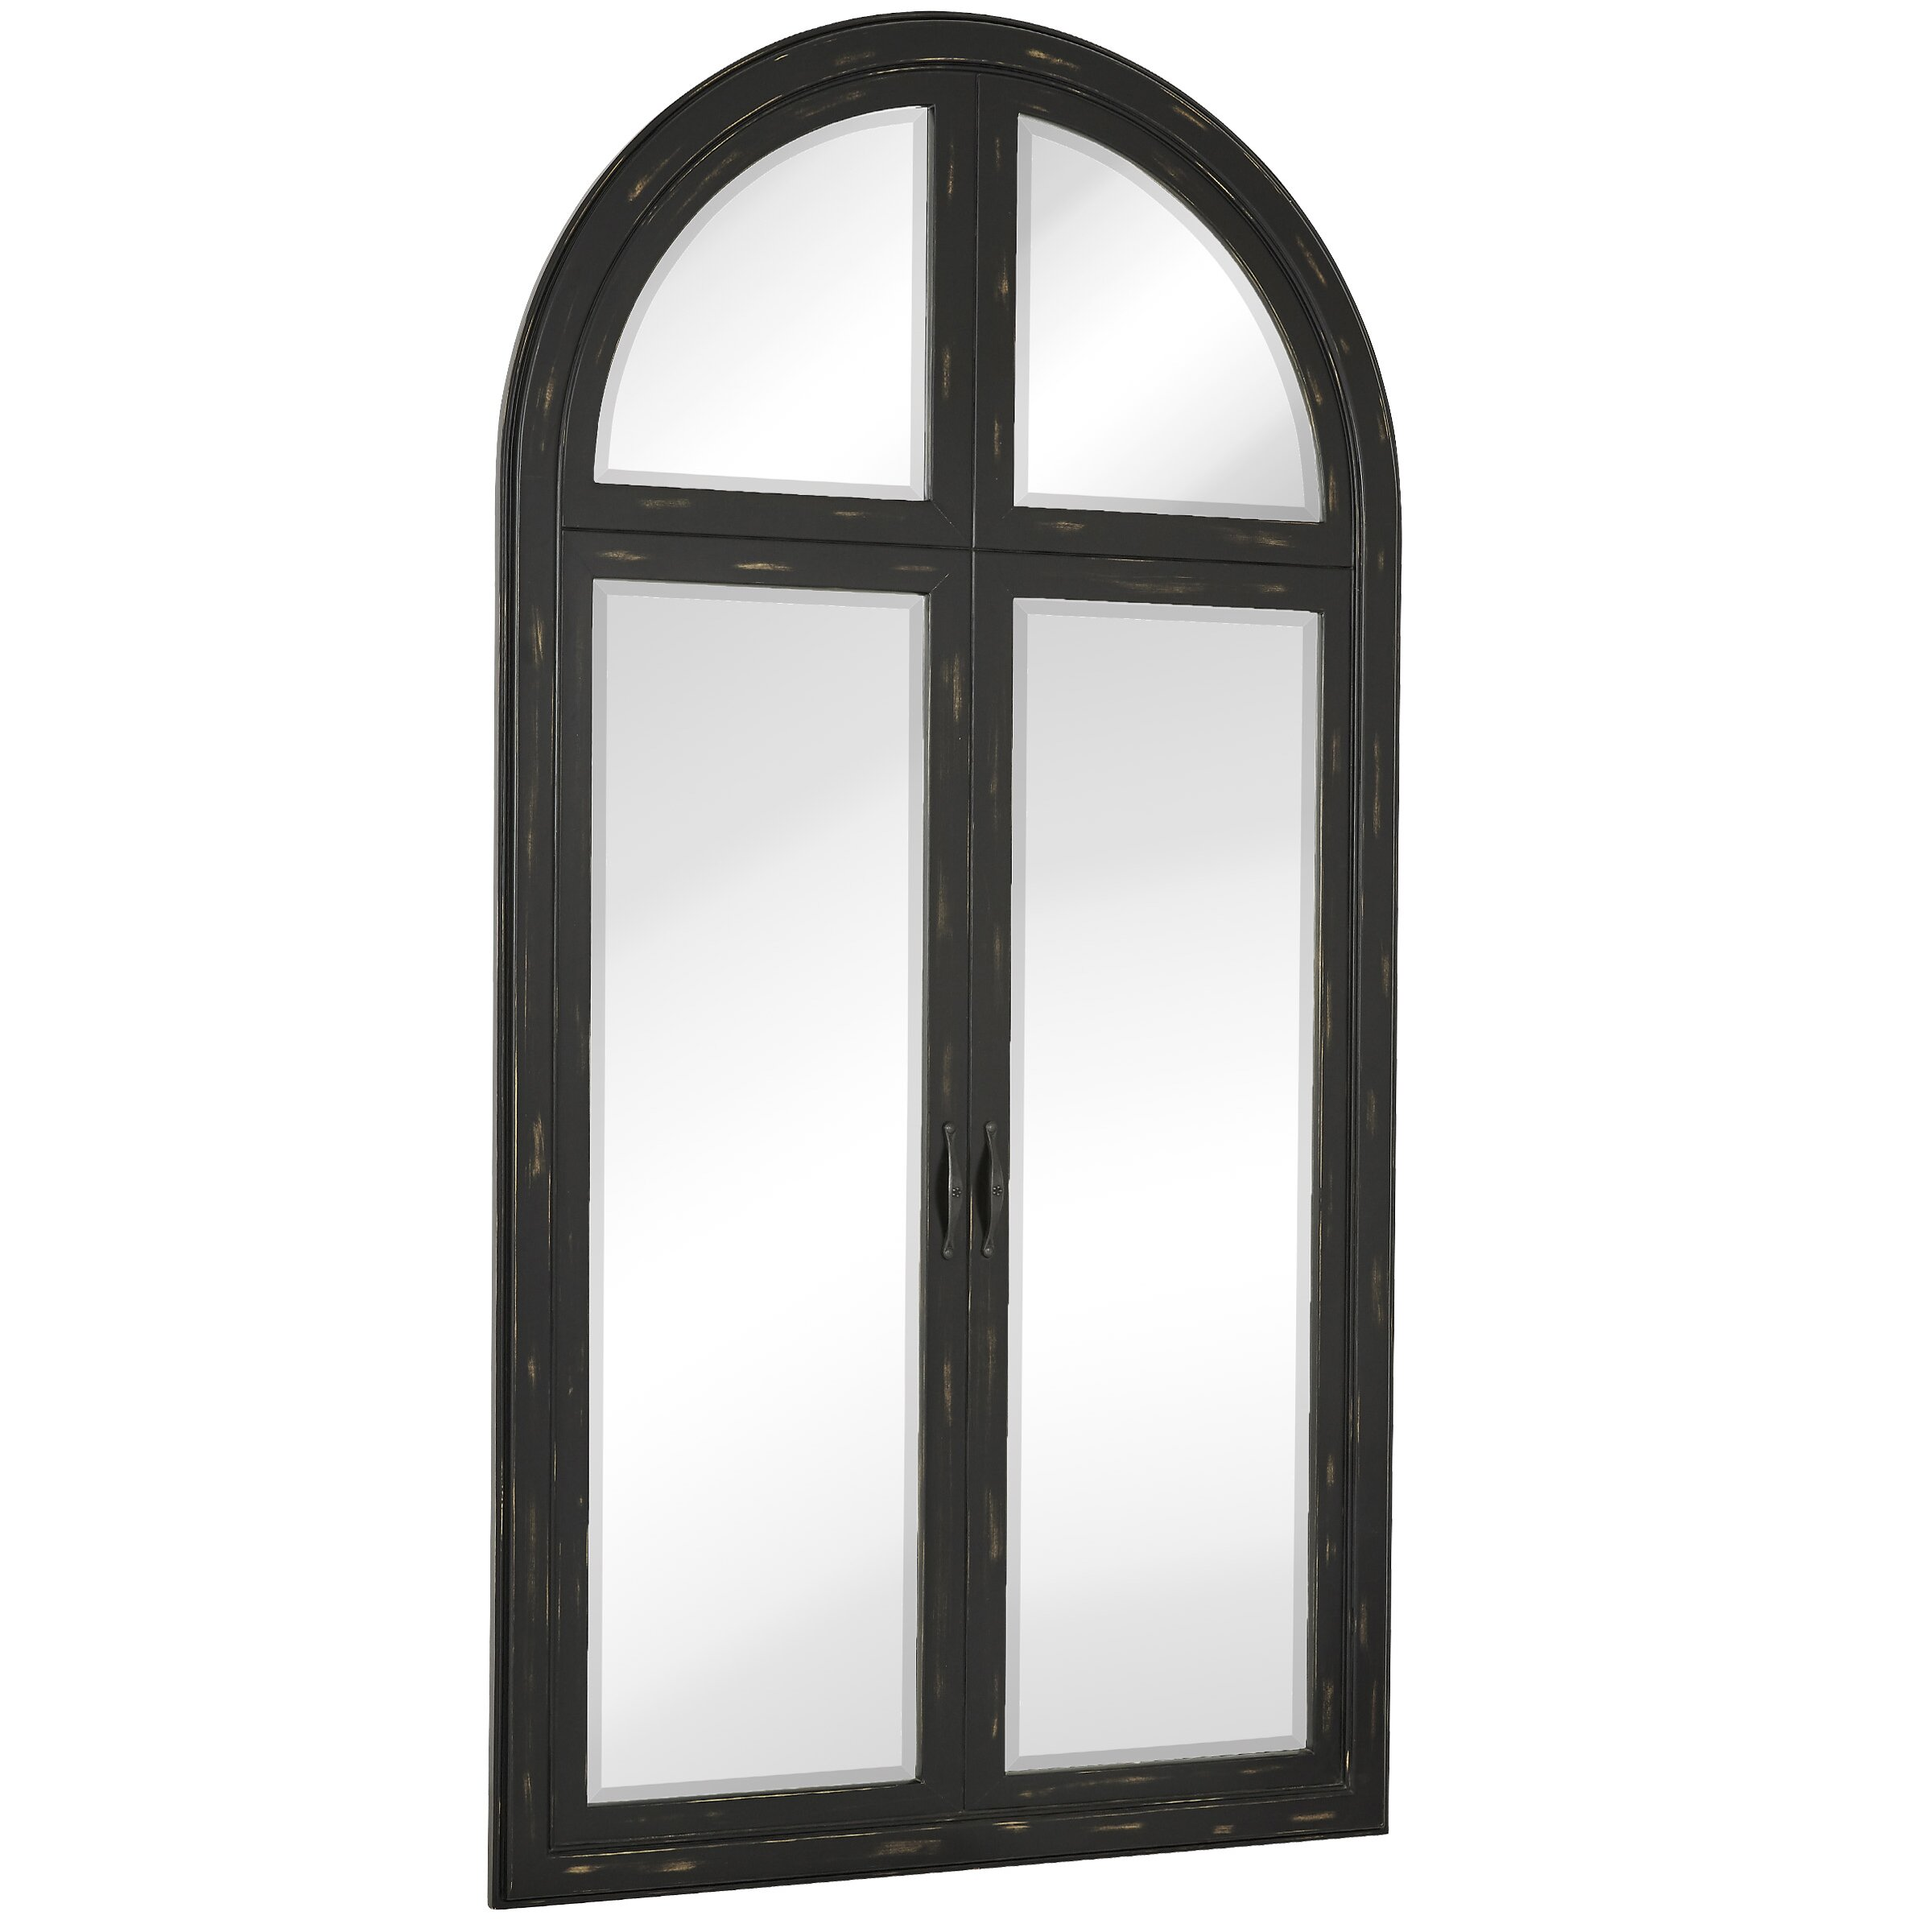 Large Black Beveled Glass Full Length Arched Window Pane